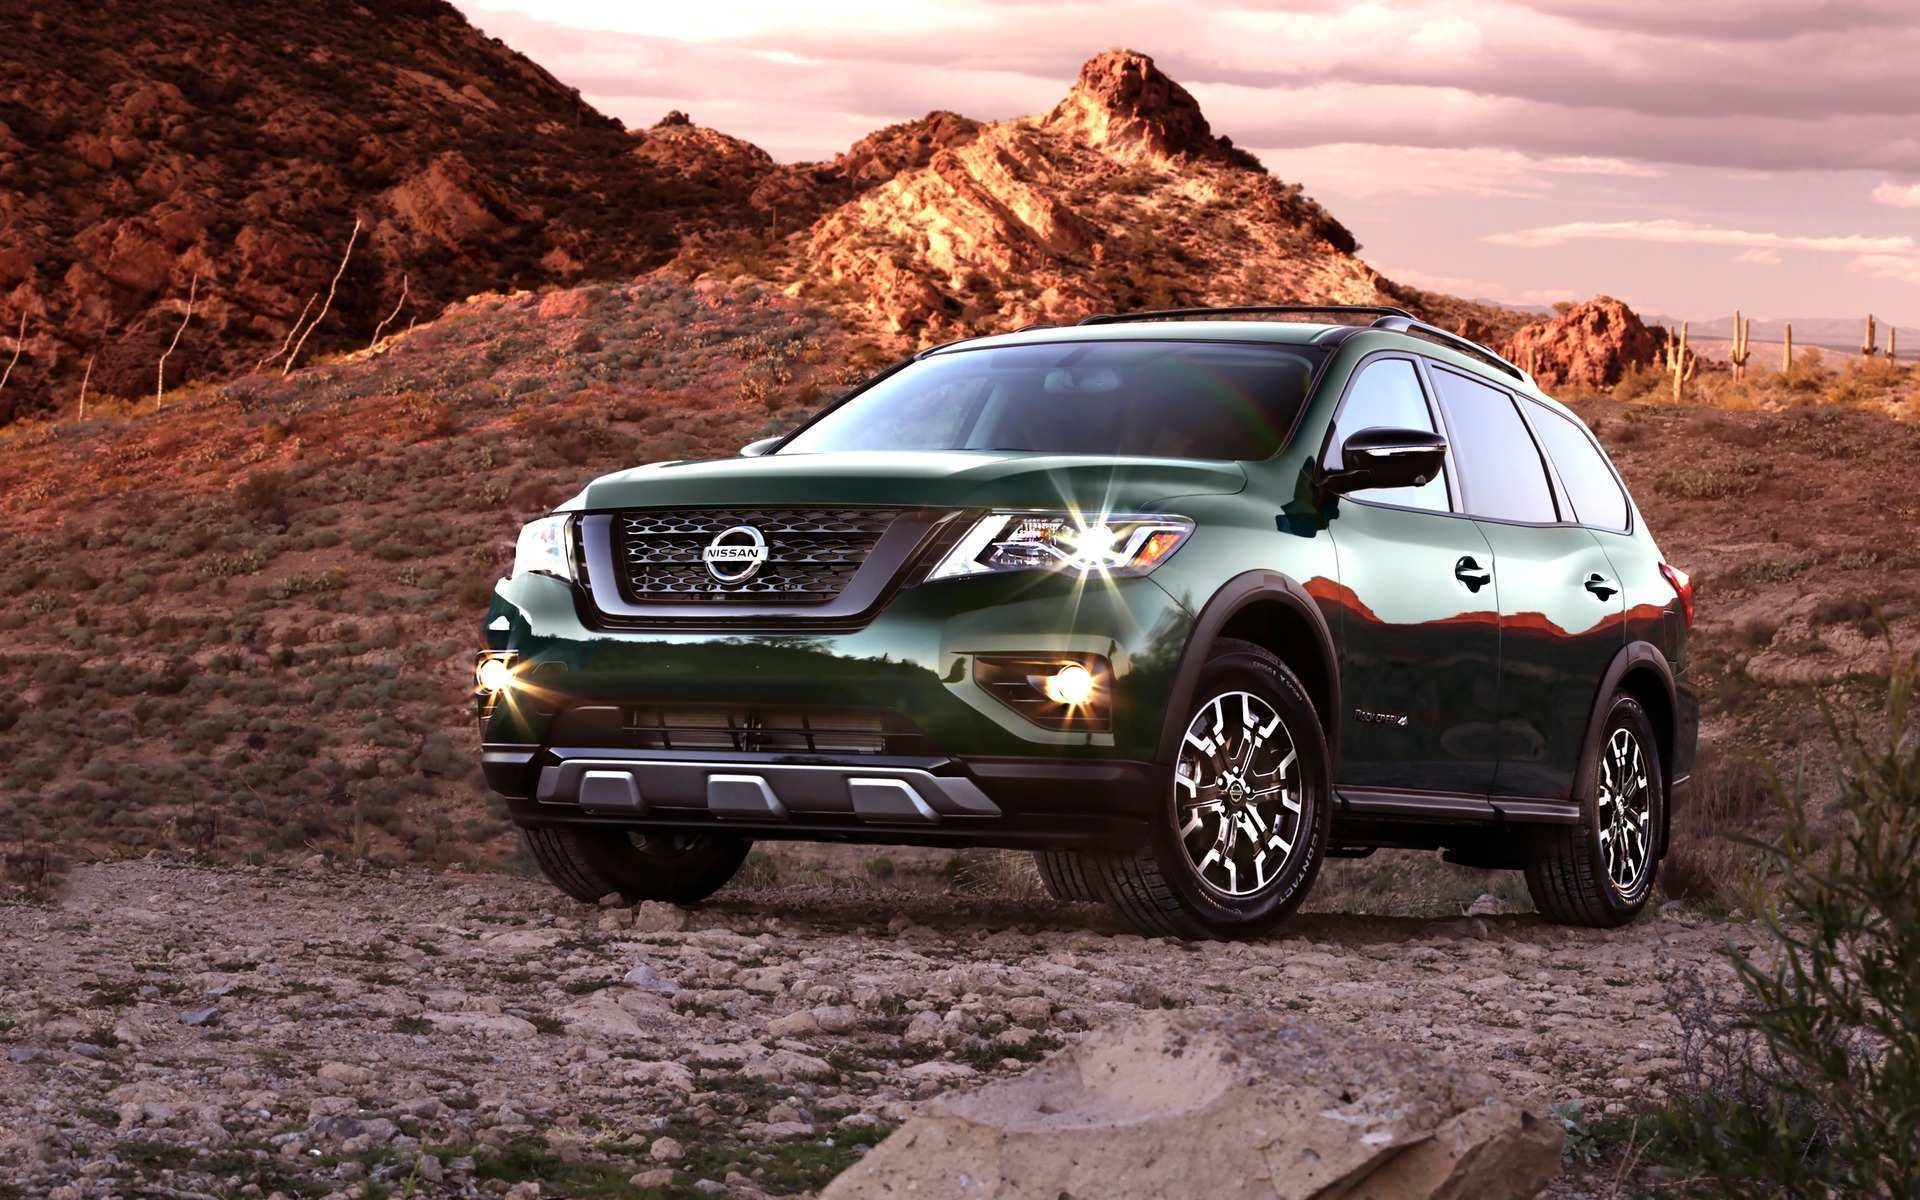 95 The Best 2020 Nissan Pathfinder Hybrid Reviews